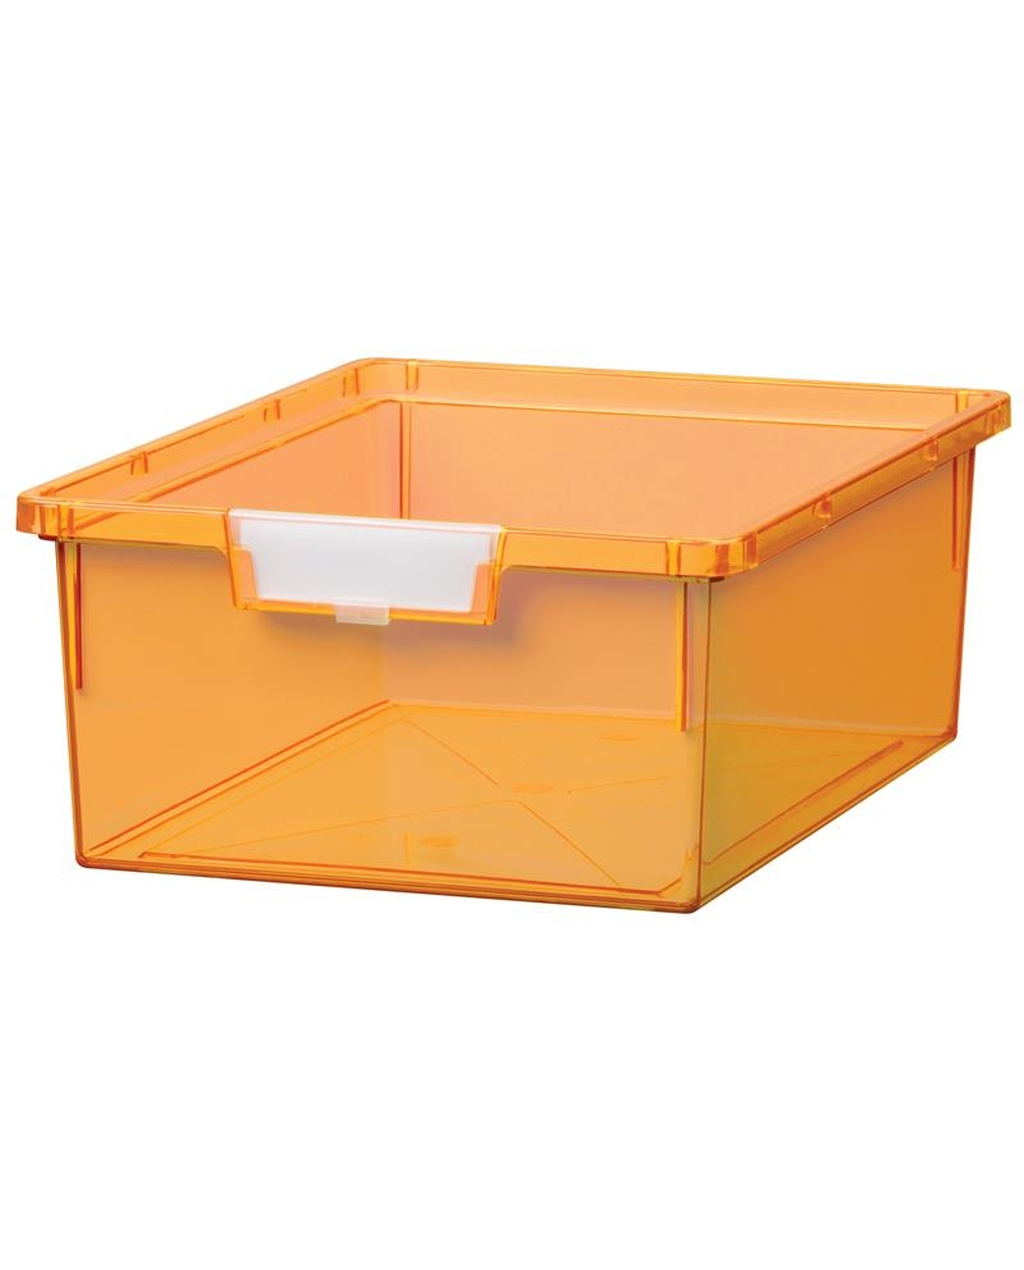 Shatterproof Double Depth Tray - Neon Orange